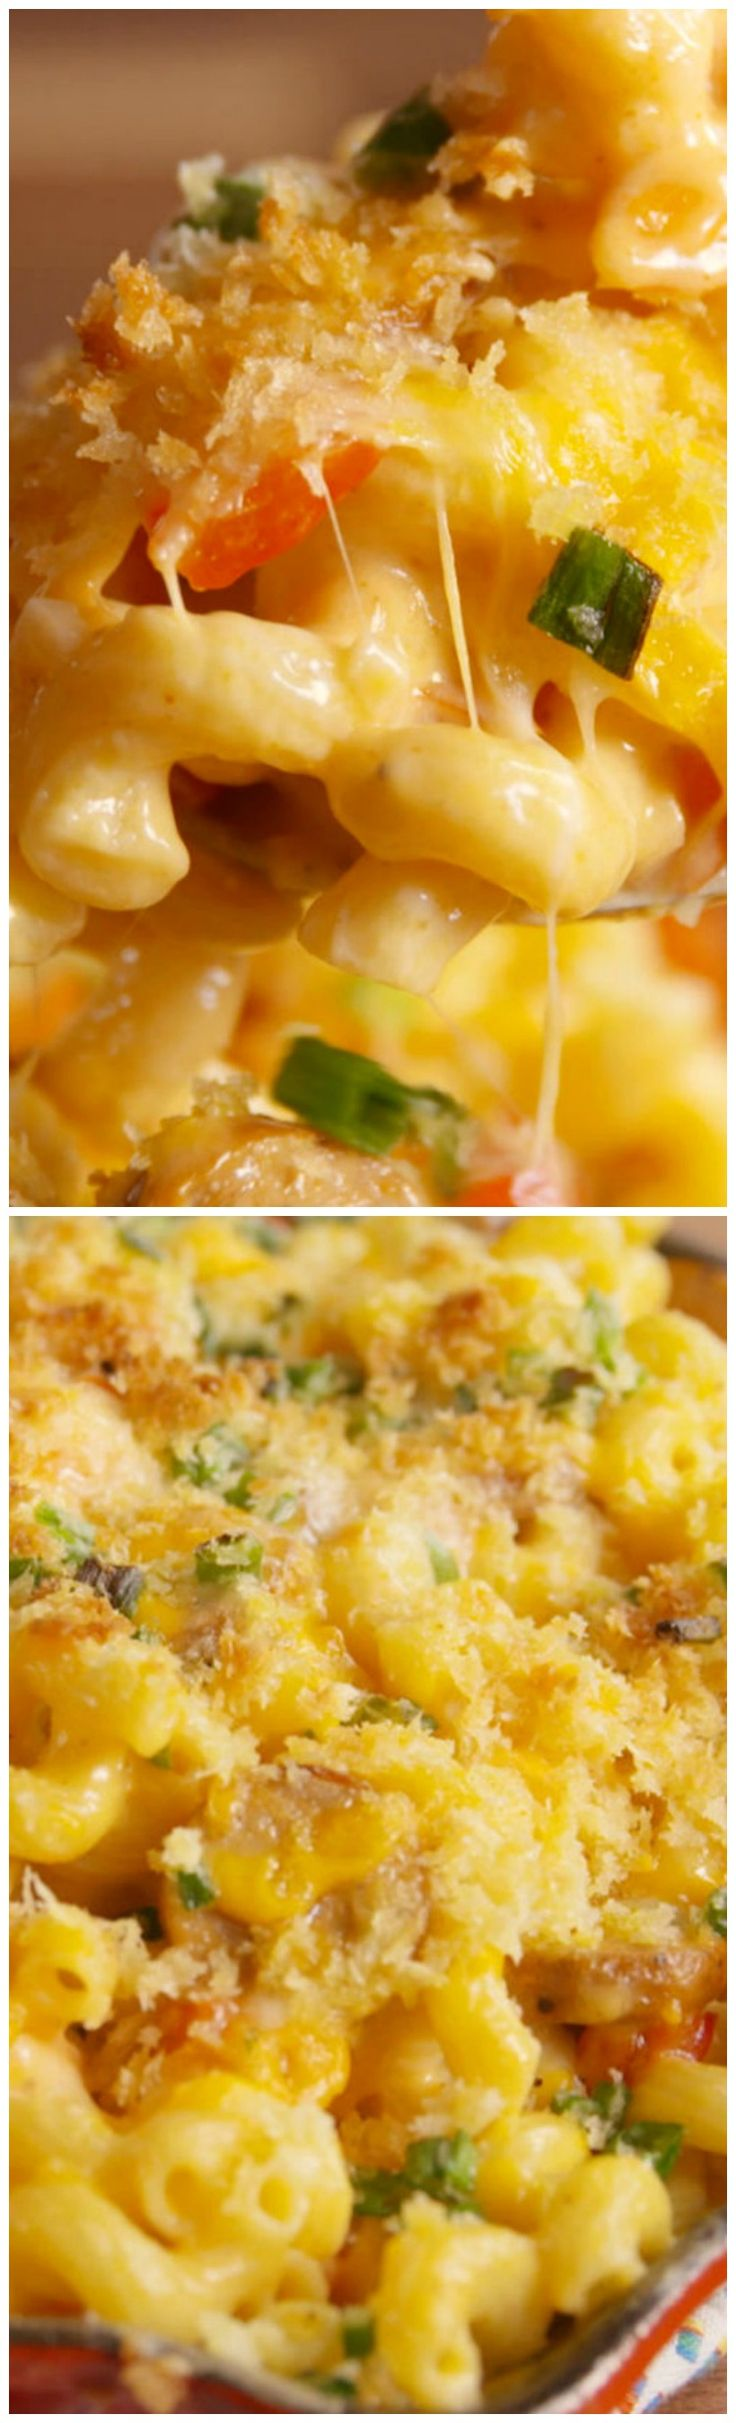 Cajun Mac & Cheese ~ It's the simple cheese sauce that makes it. A blend of cajun seasoning, milk, cheddar, and Monterey (feel free to mix up this cheese combo) creates the perfectly silky coating for your noodles and shrimp and sausage mixture